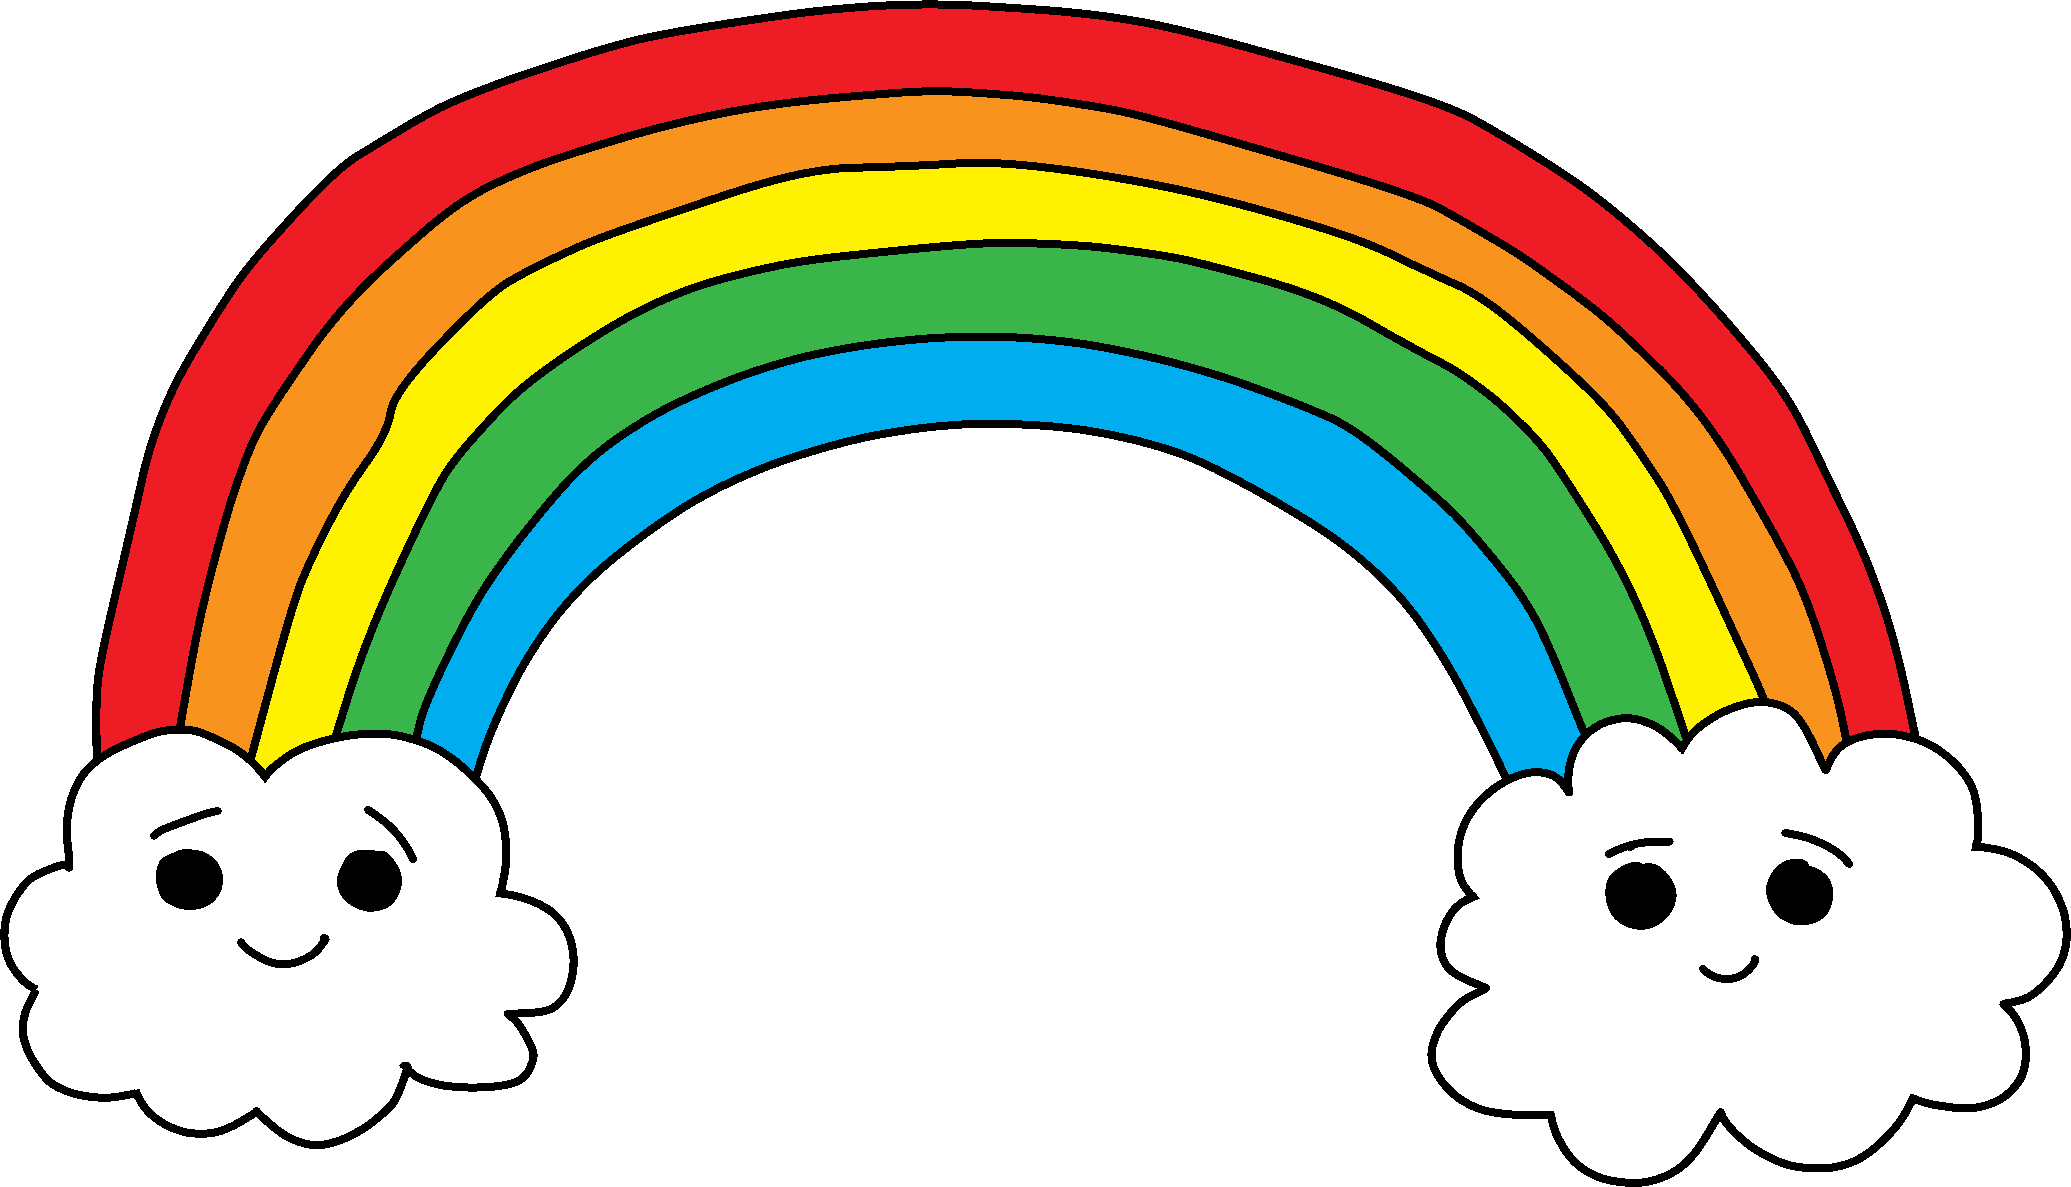 rainbow, happy birthday materials code club #12401